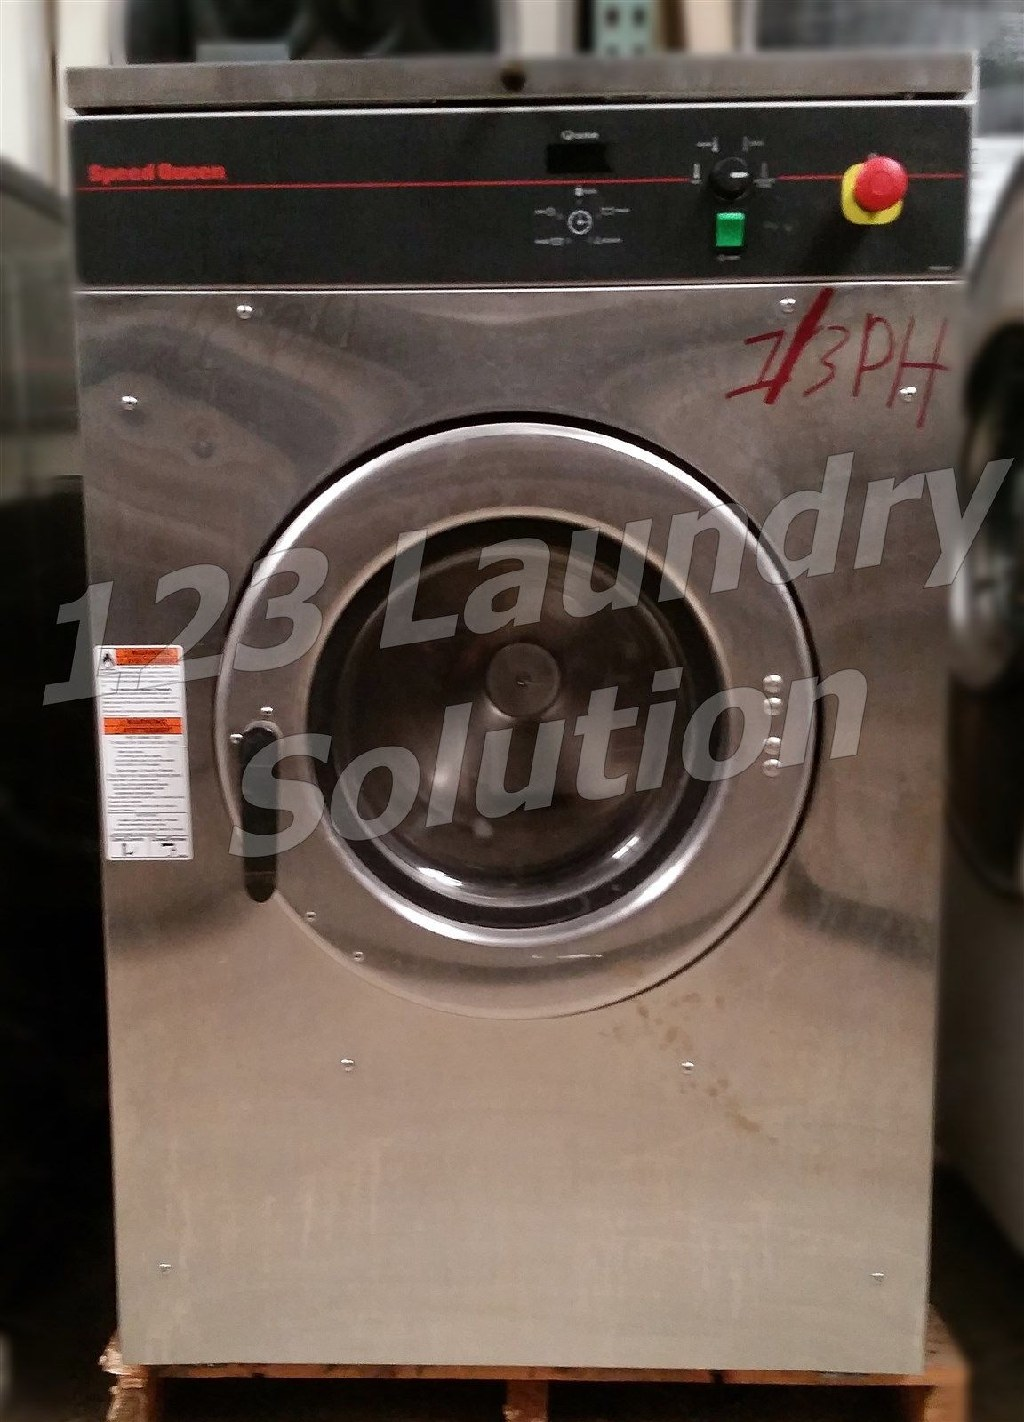 Coin Laundry Speed Queen Front Load Washer OPL 30LB 1/3PH 220V SCN030GNFXU3001 Used